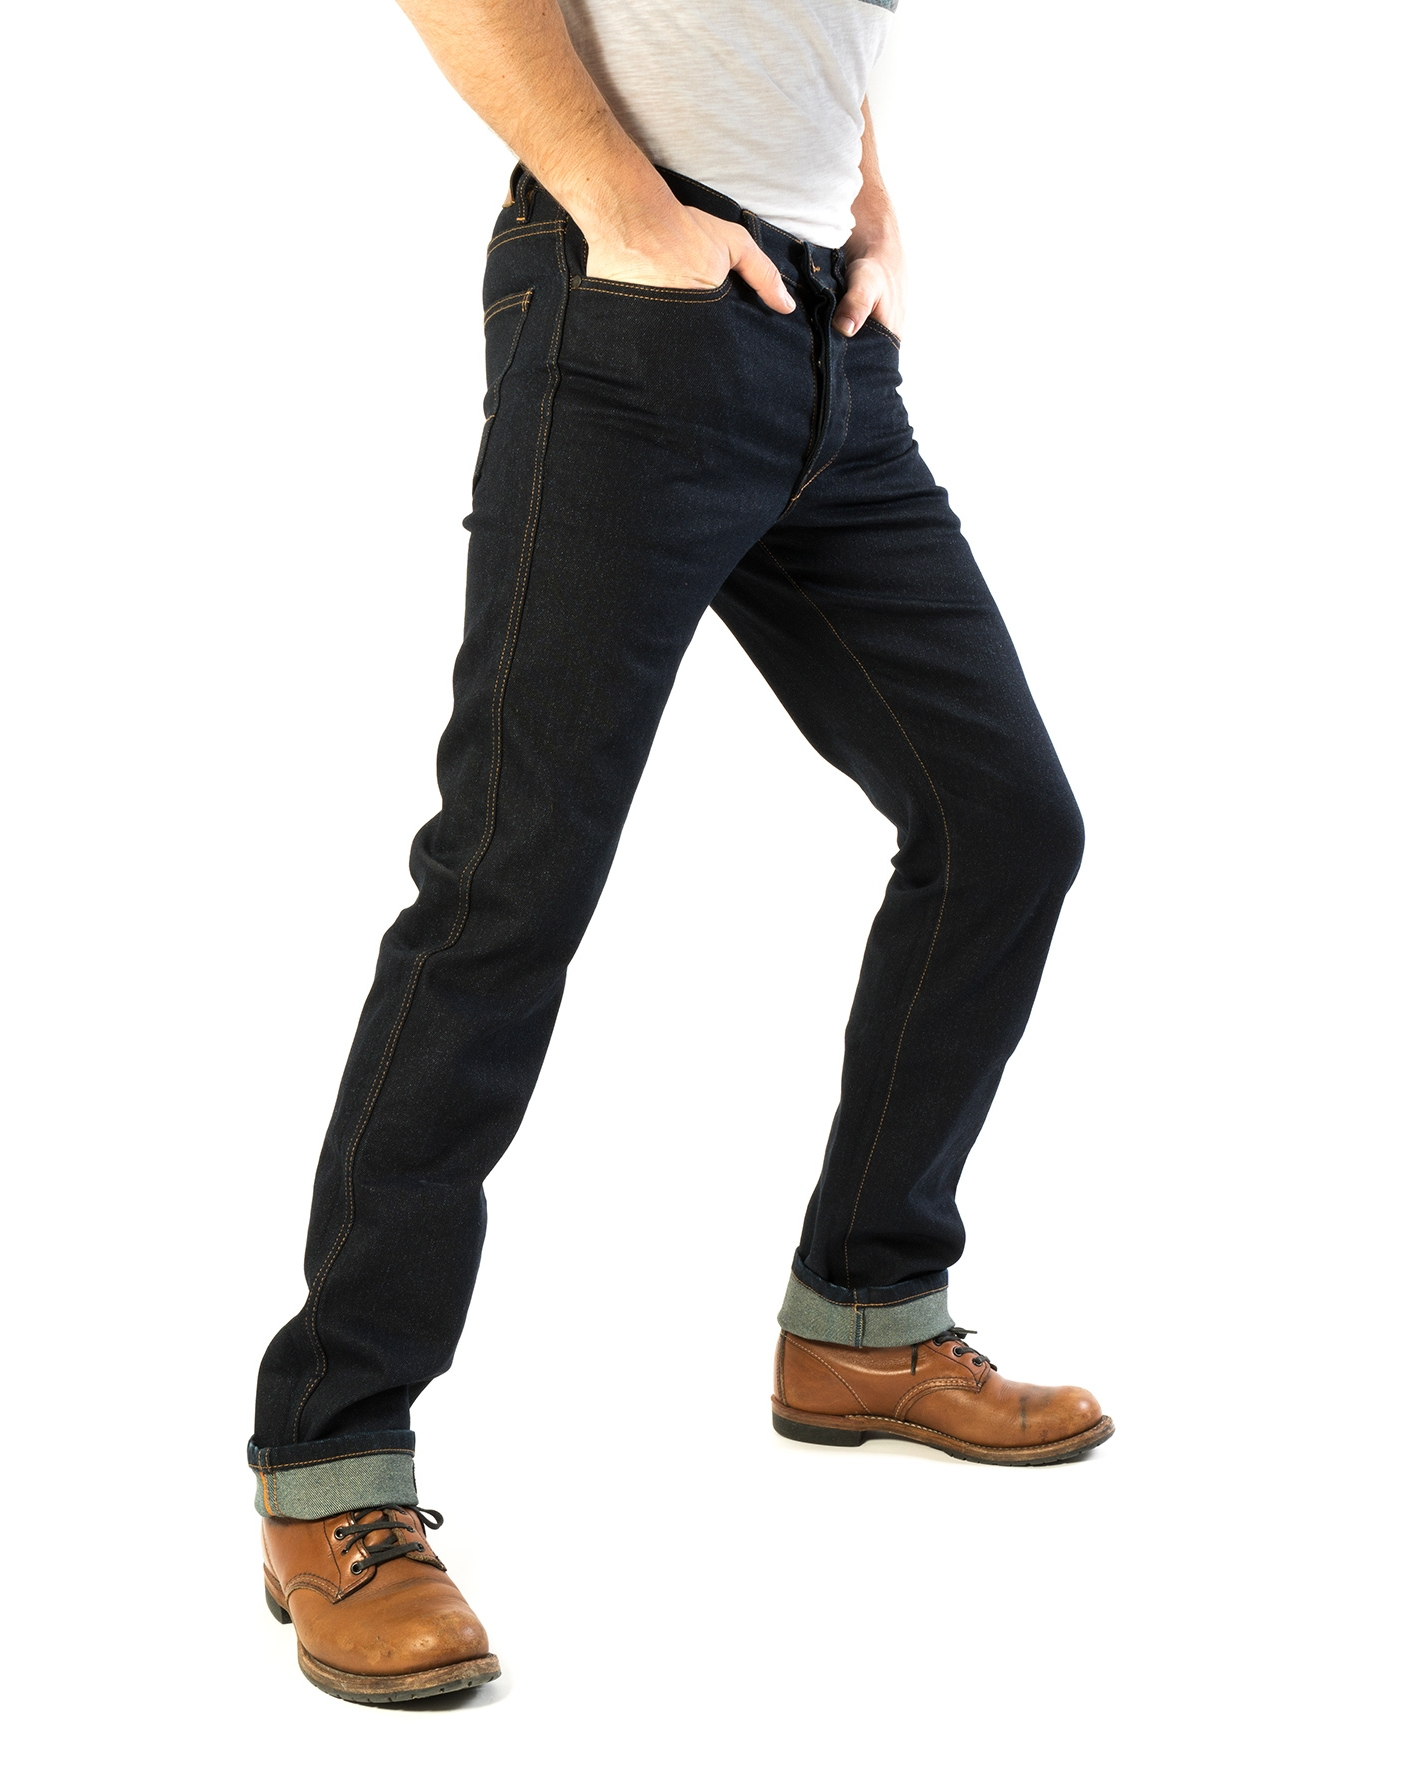 JEAN'STER - WITH A CLASSIC FIT - AND AVAILABLE IN STONE WASH, RAW DARK INDIGO, OR BLACK - JEAN'STER IS TIMELESS. THESE JEANS ARE AS COMFORTABLE AS THEY ARE LONG-LASTING.